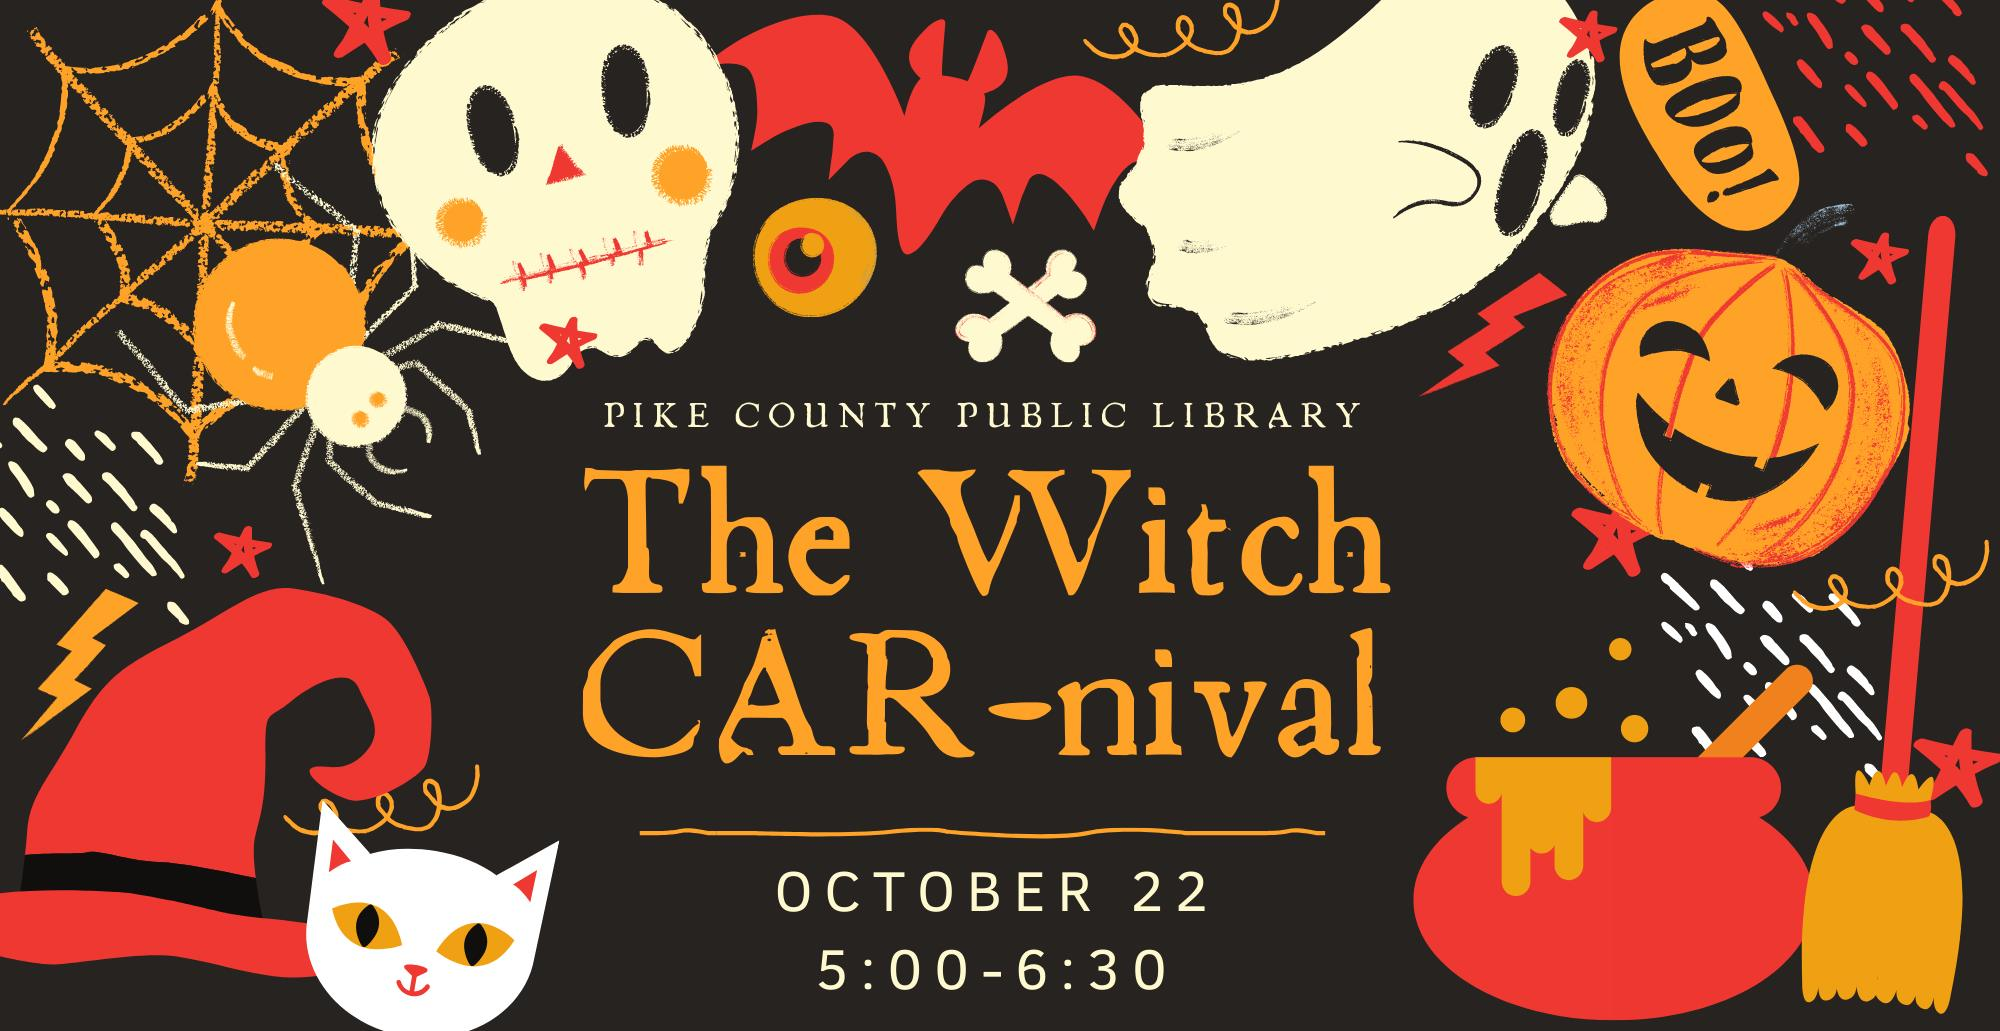 pike county library event